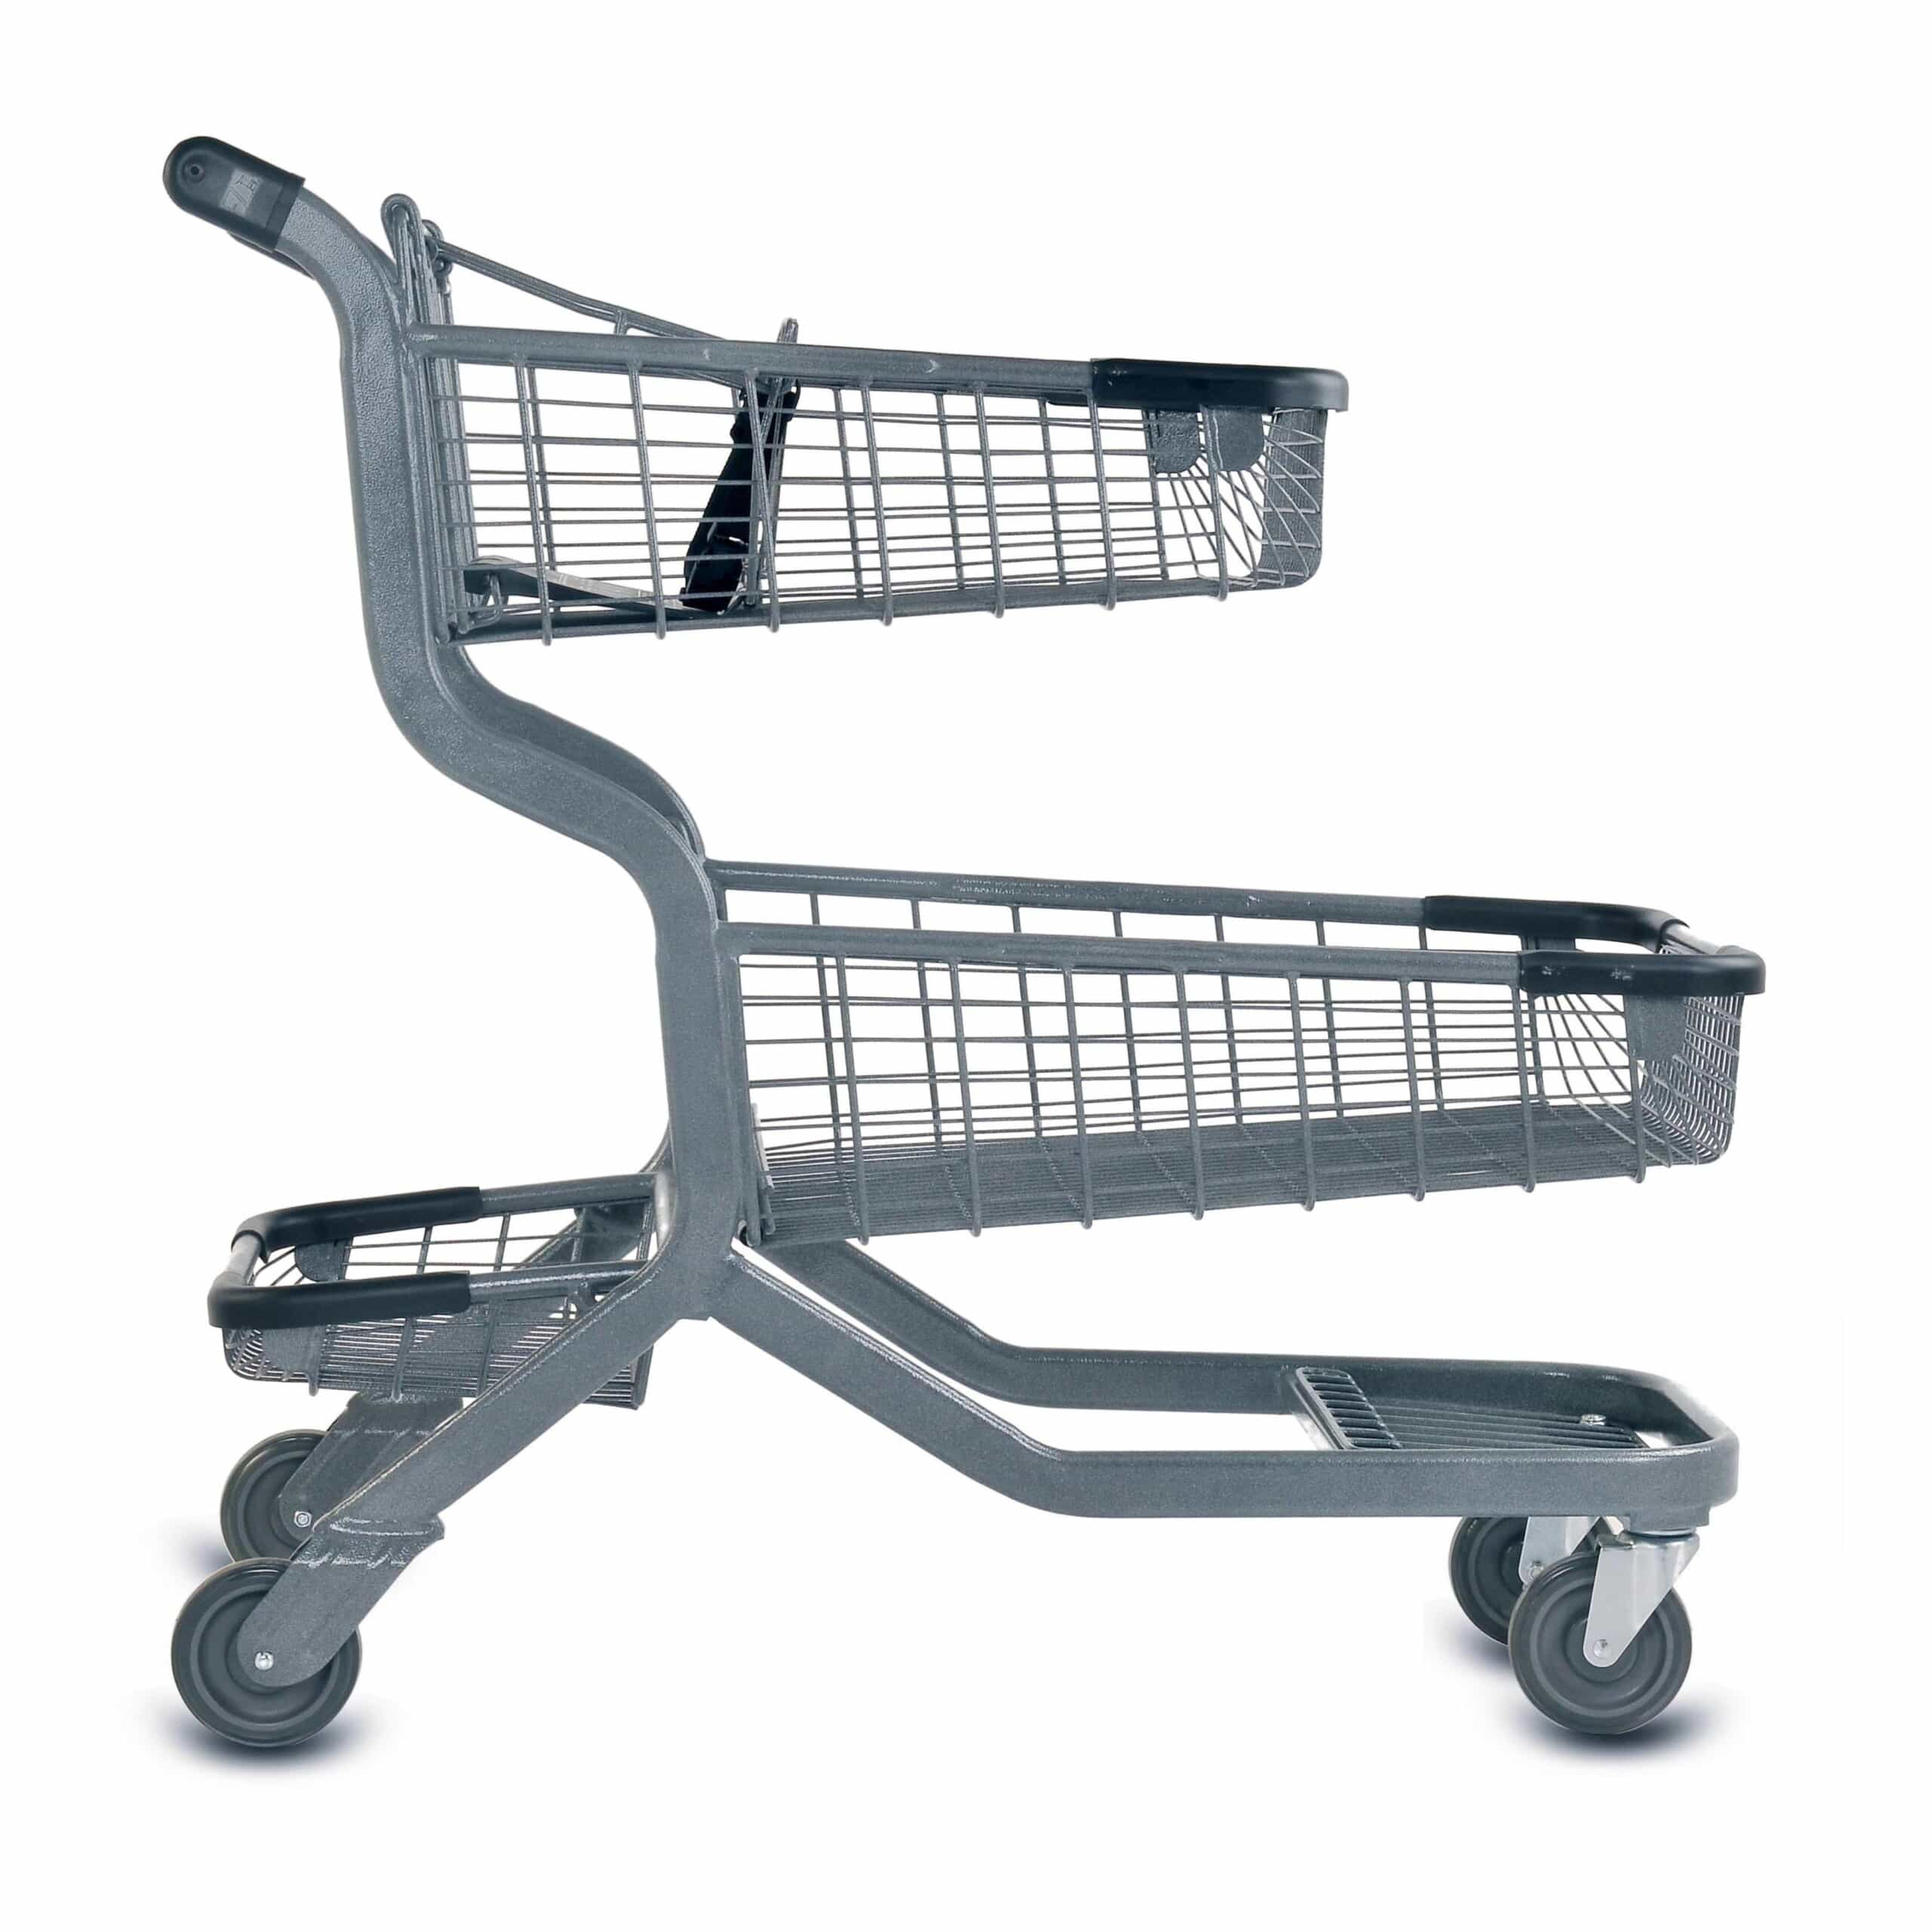 EXpress12000 Two-Tier Wire Shopping Cart - Versacart